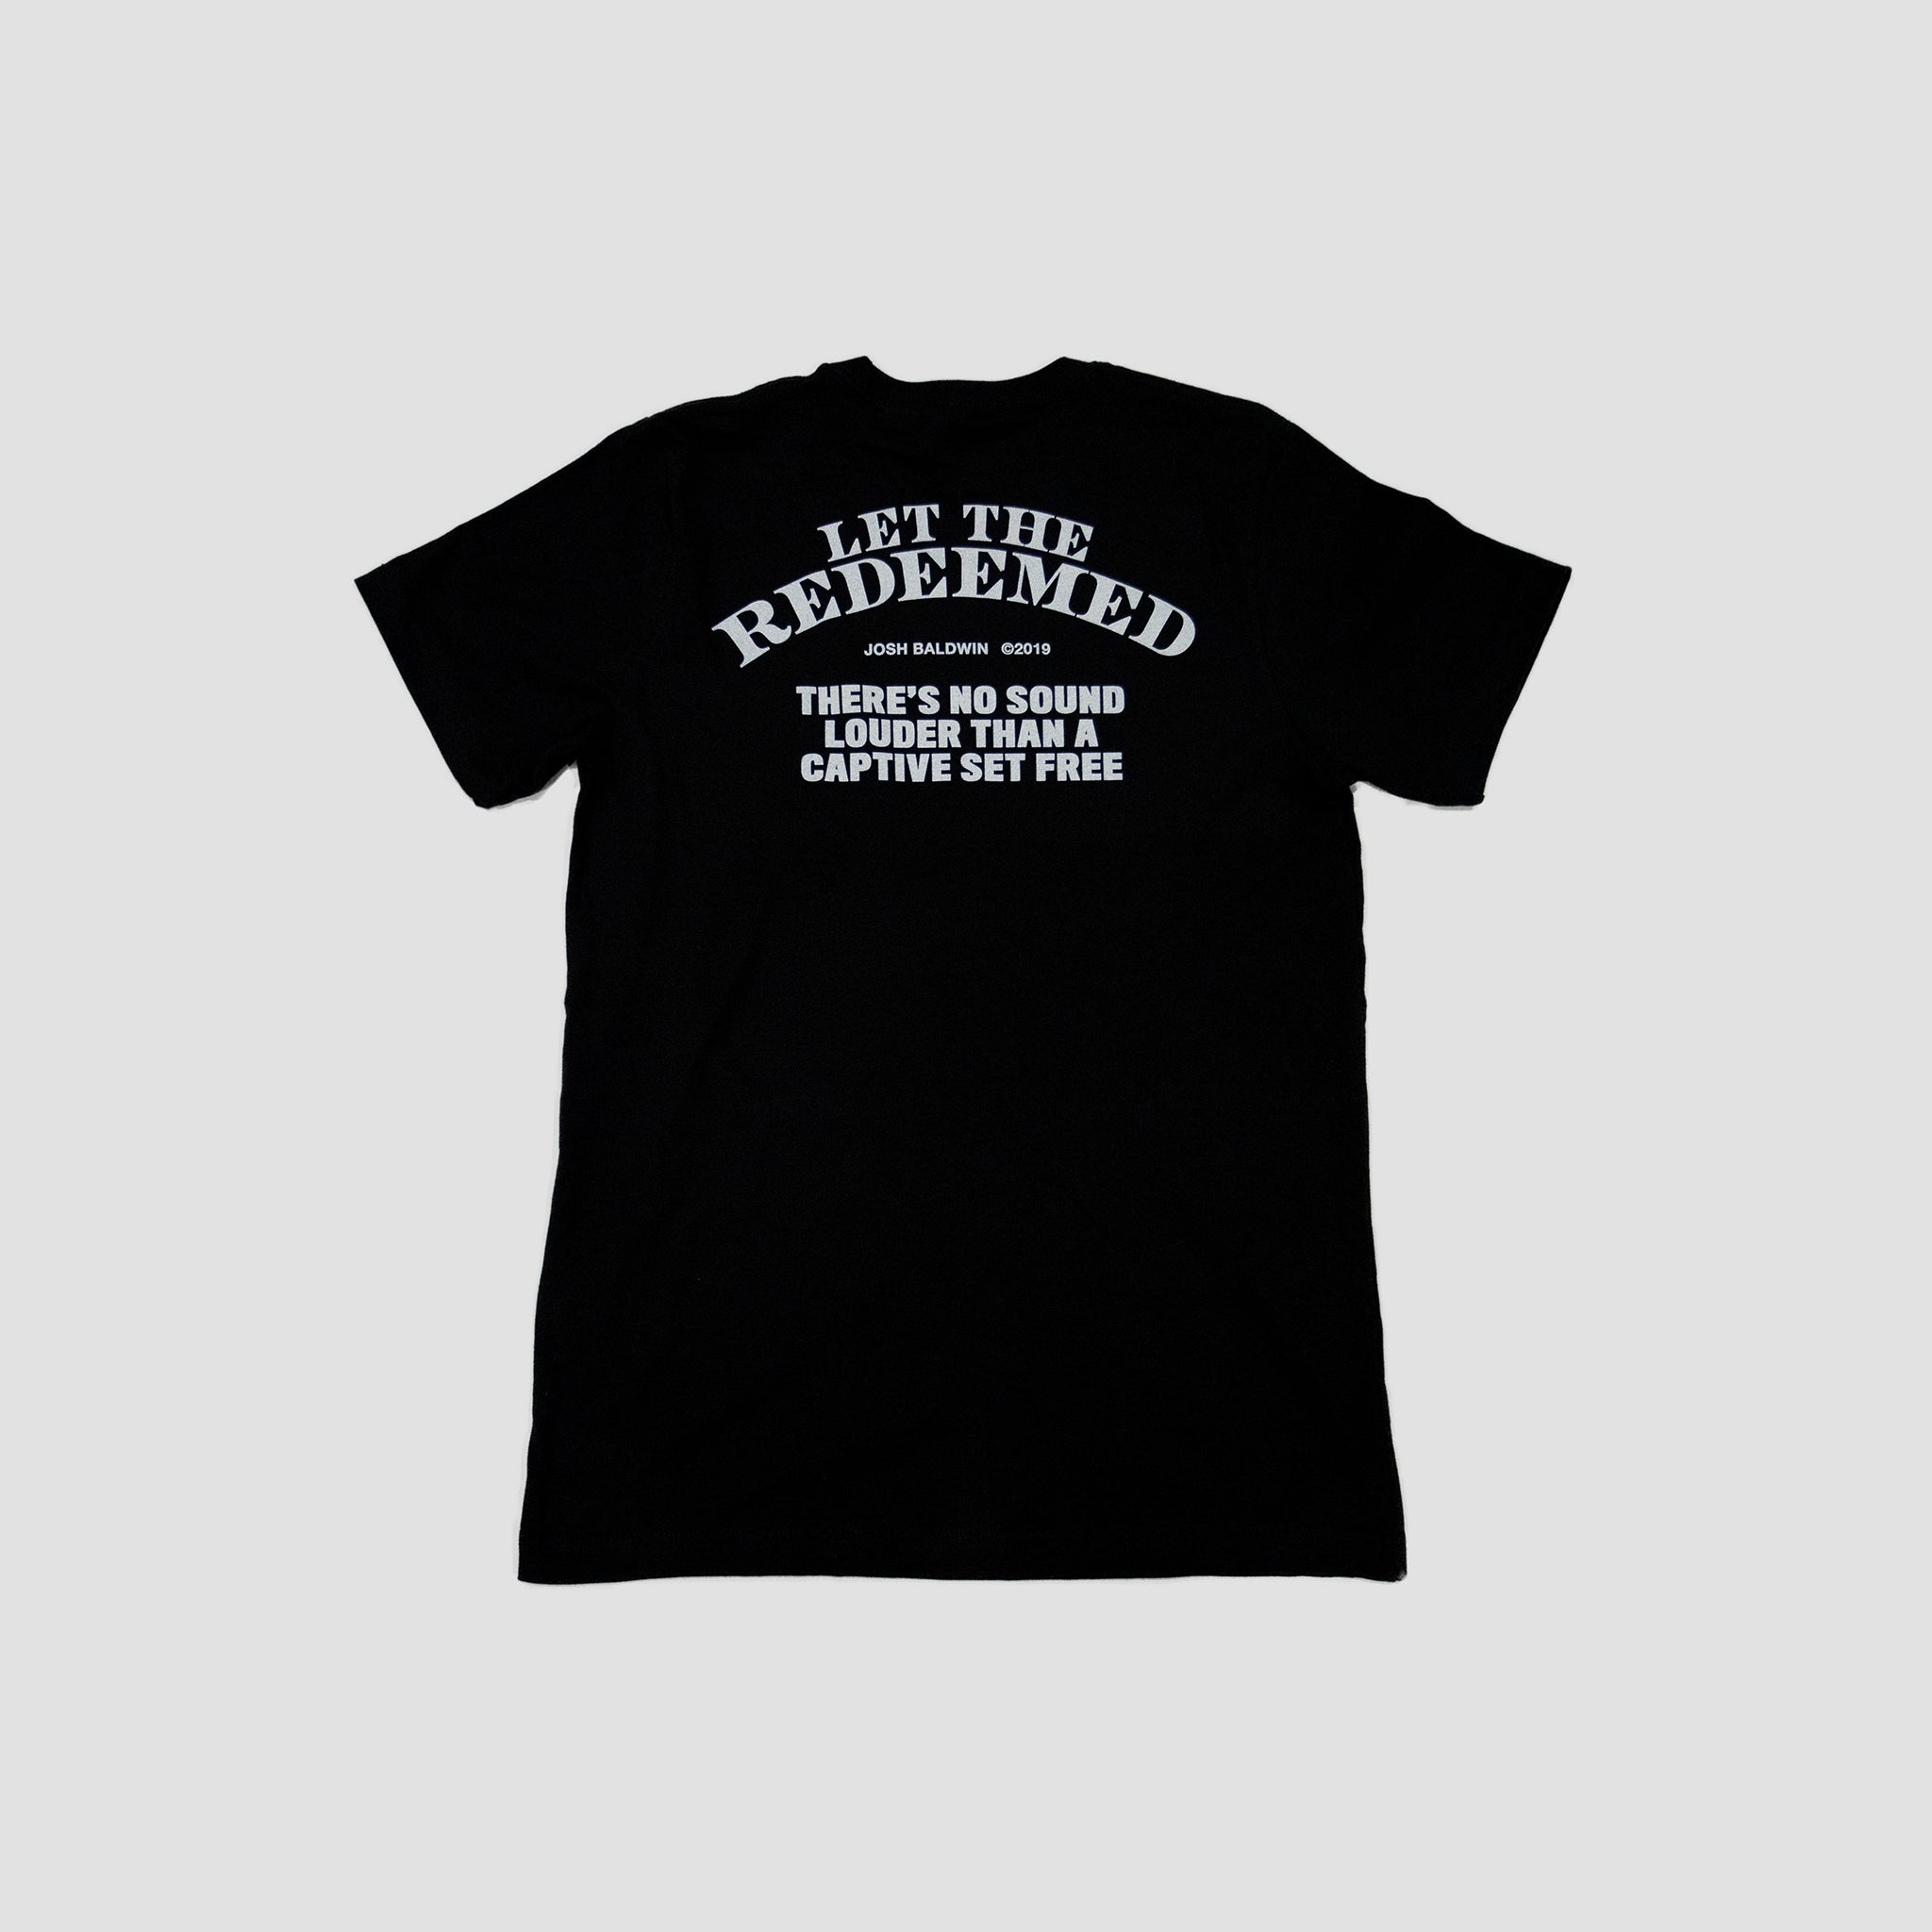 Let the Redeemed Tee